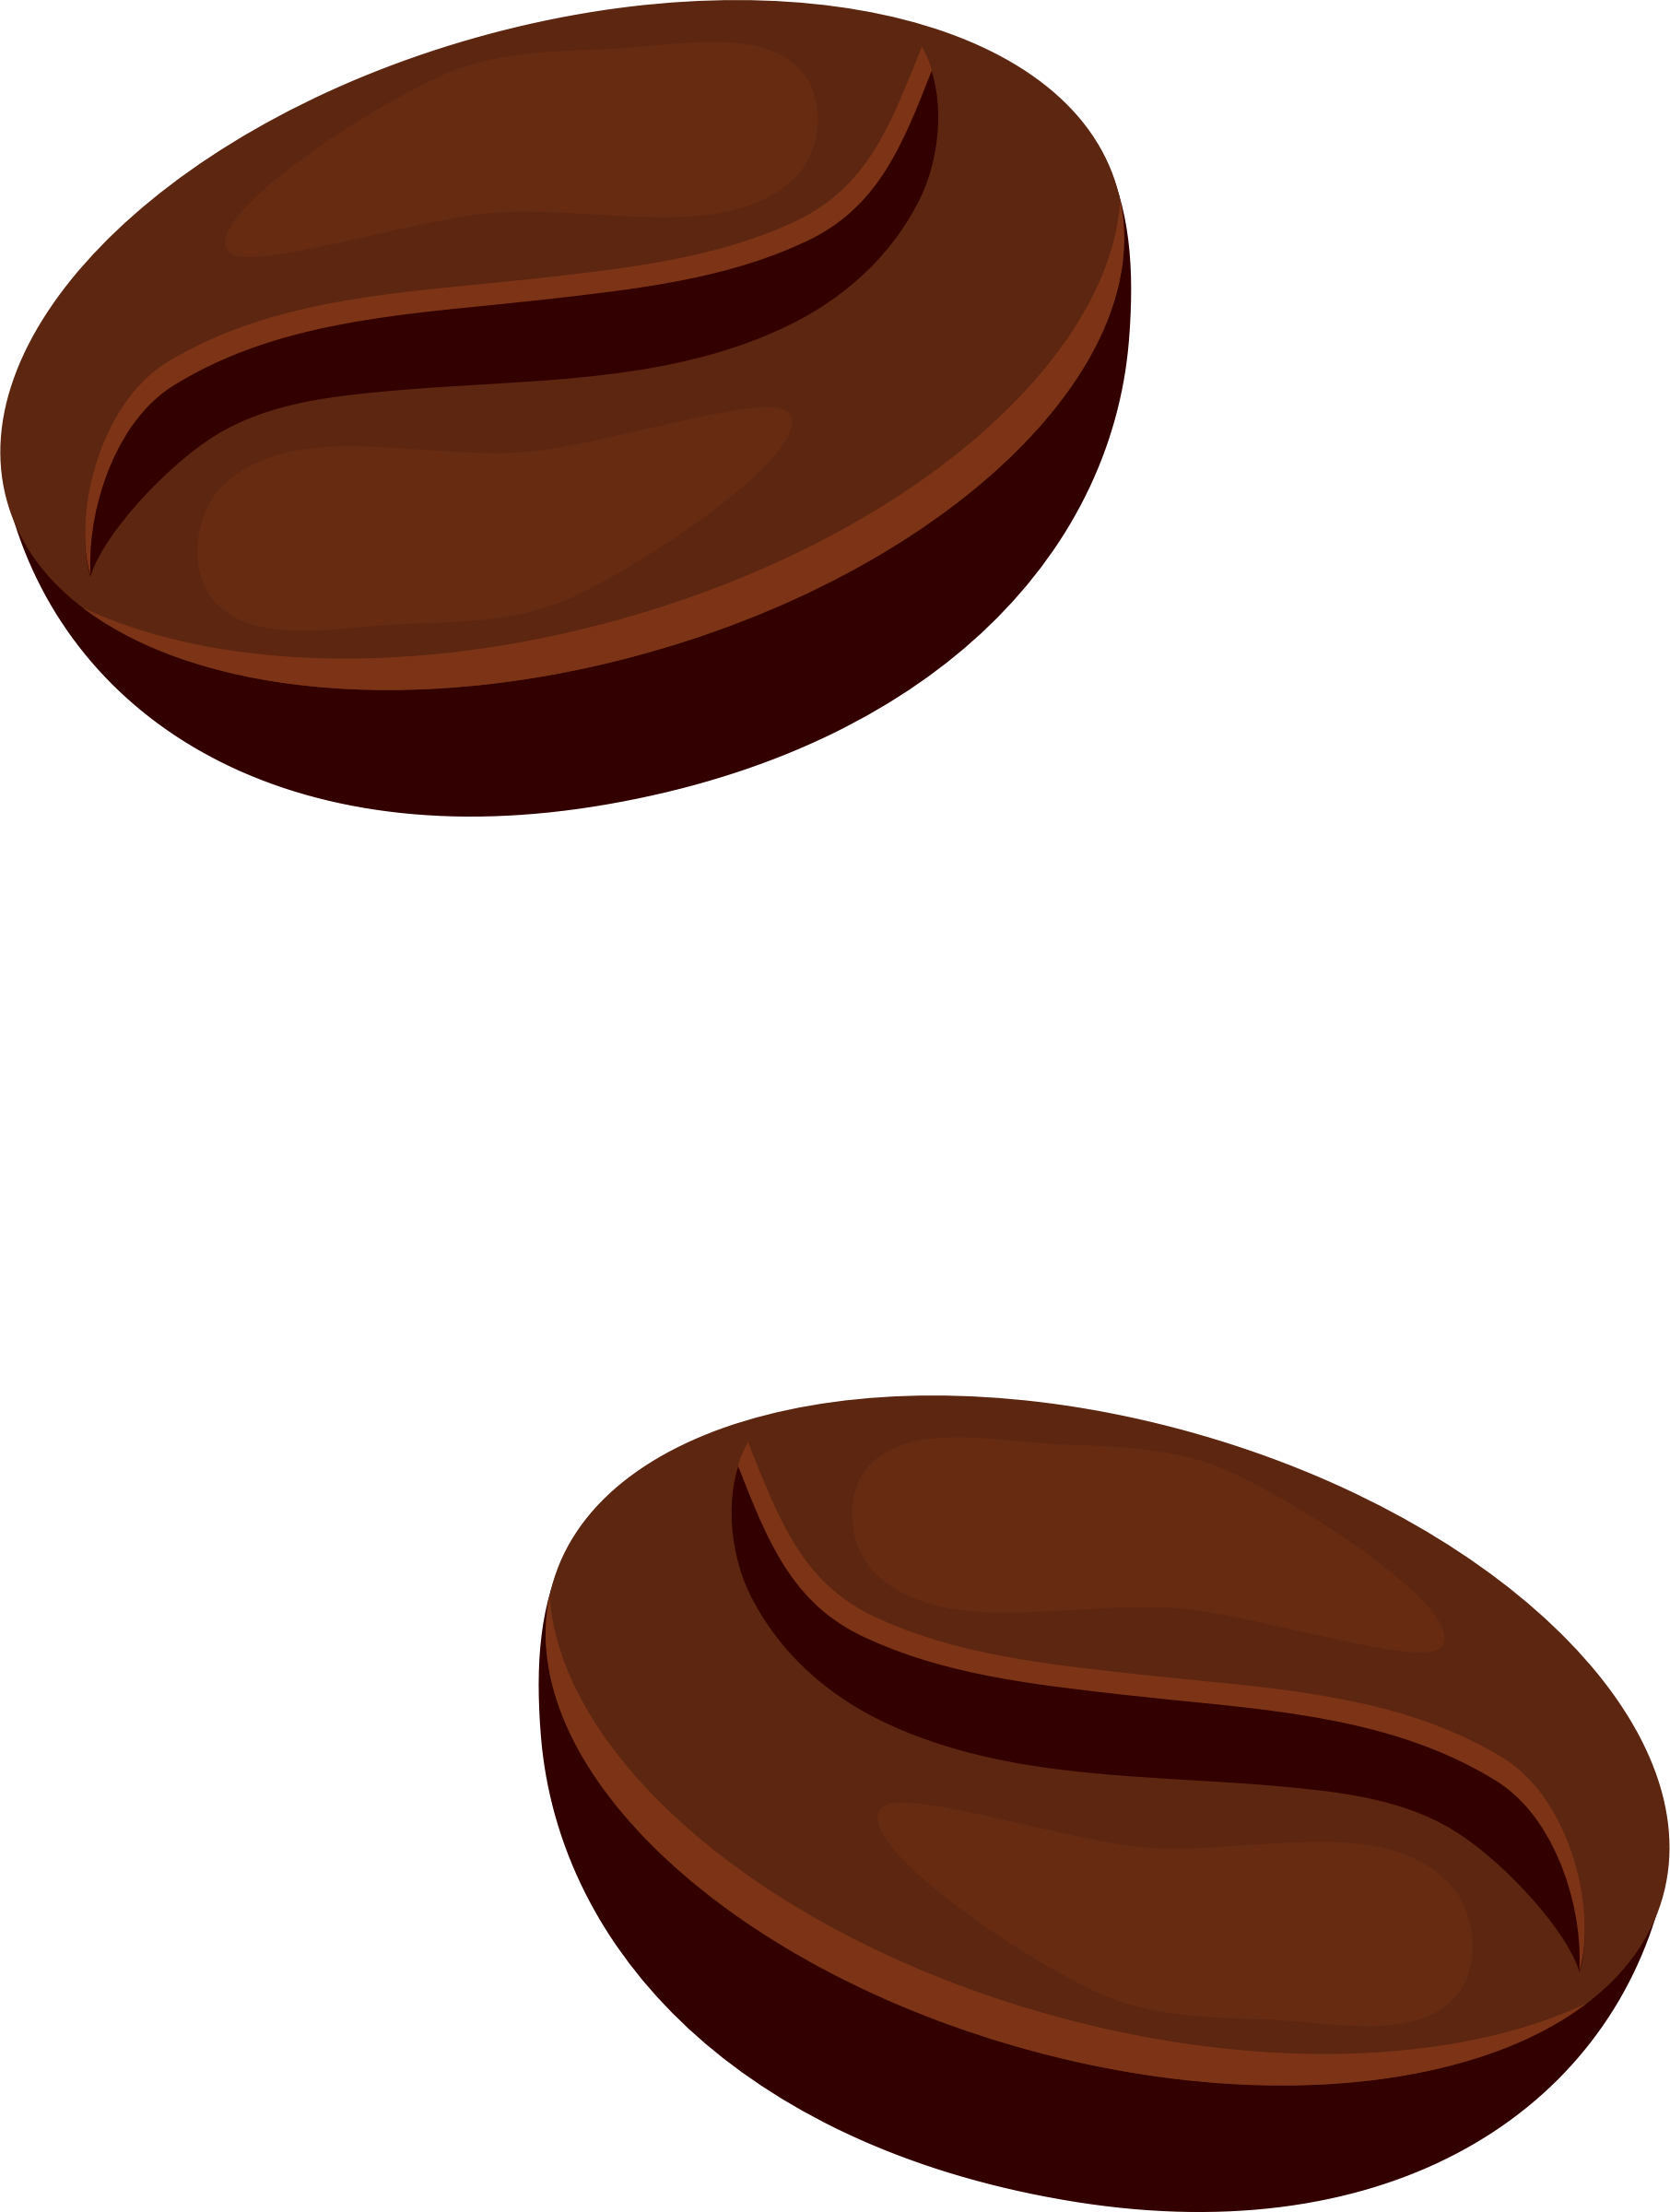 Clipart - Coffee beans